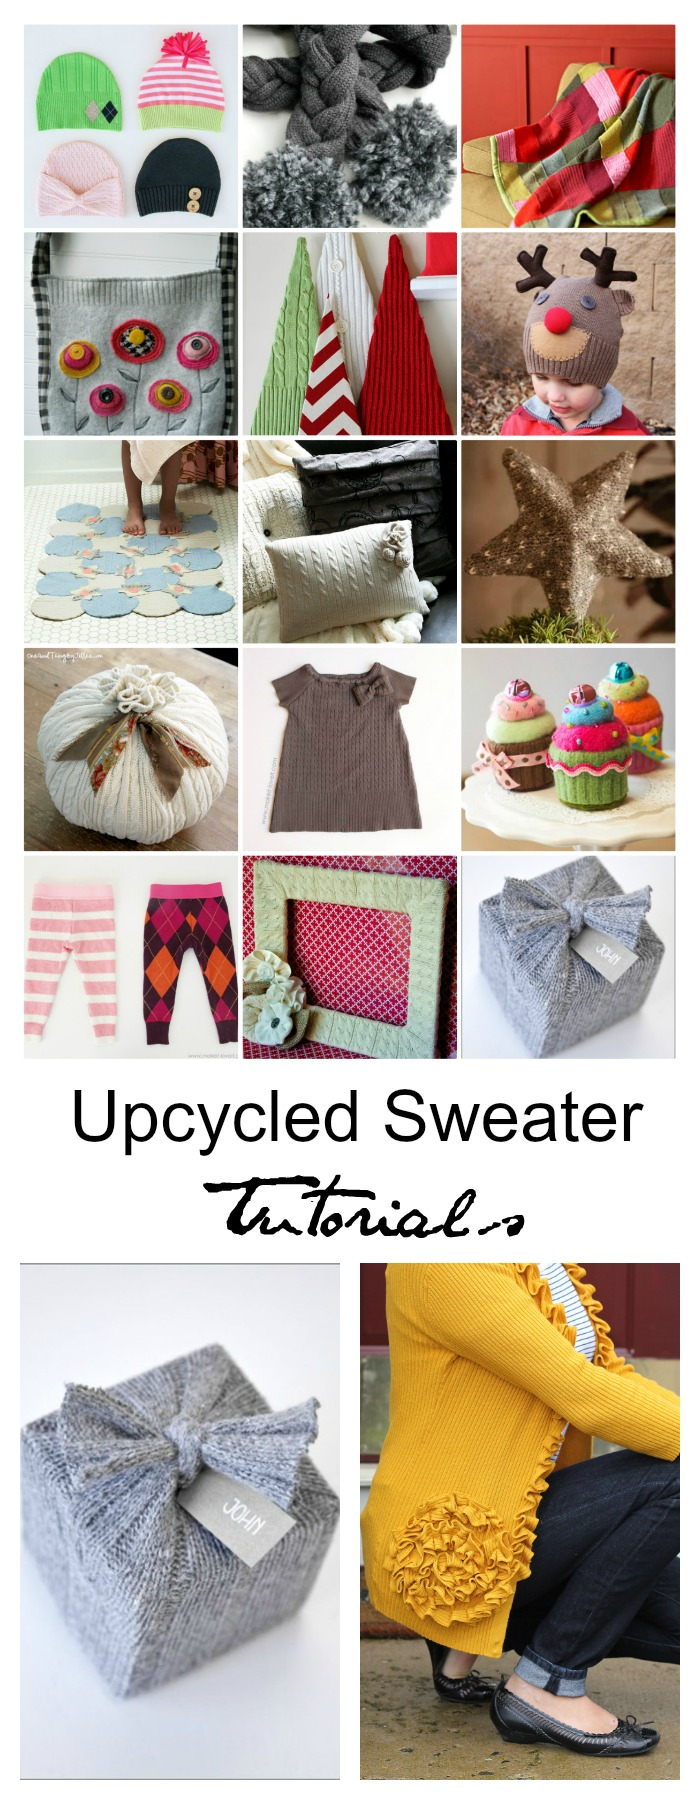 Upcycled-Sweater-Tutorials-Pin